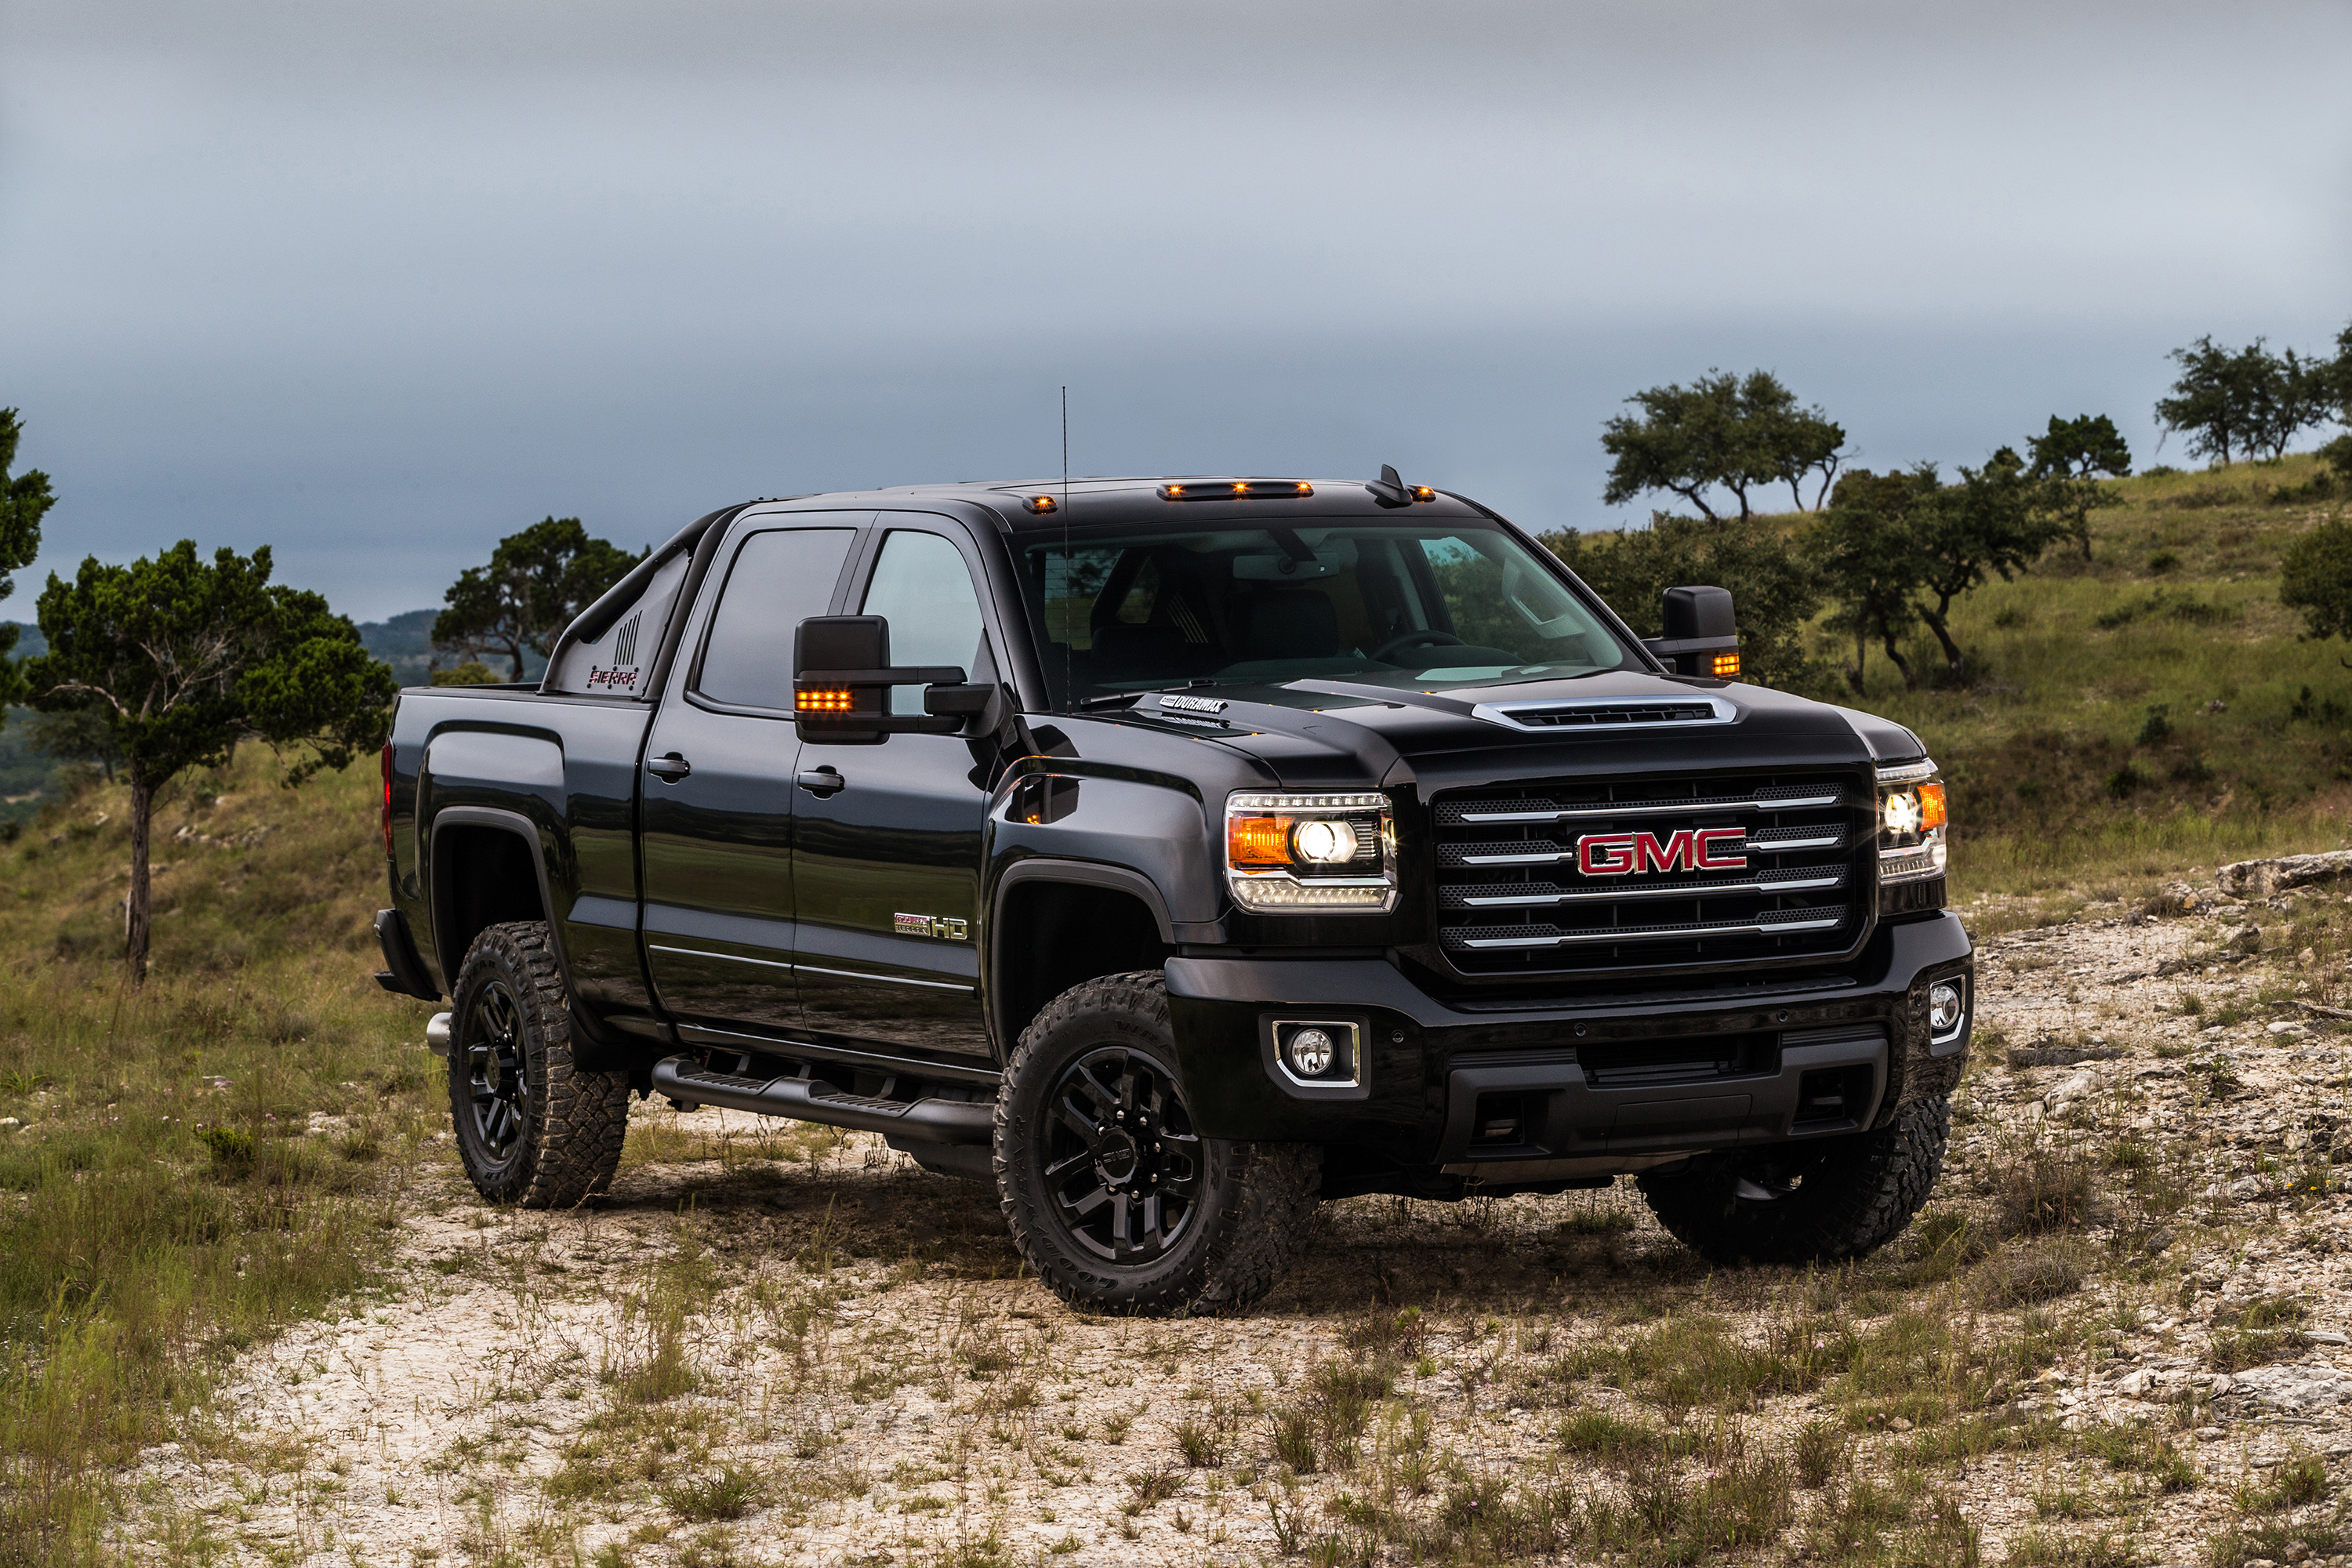 2017-gmc-sierra-2500hd-all-terrain-x-reporting-for-off-road-duty-112017_1.jpg